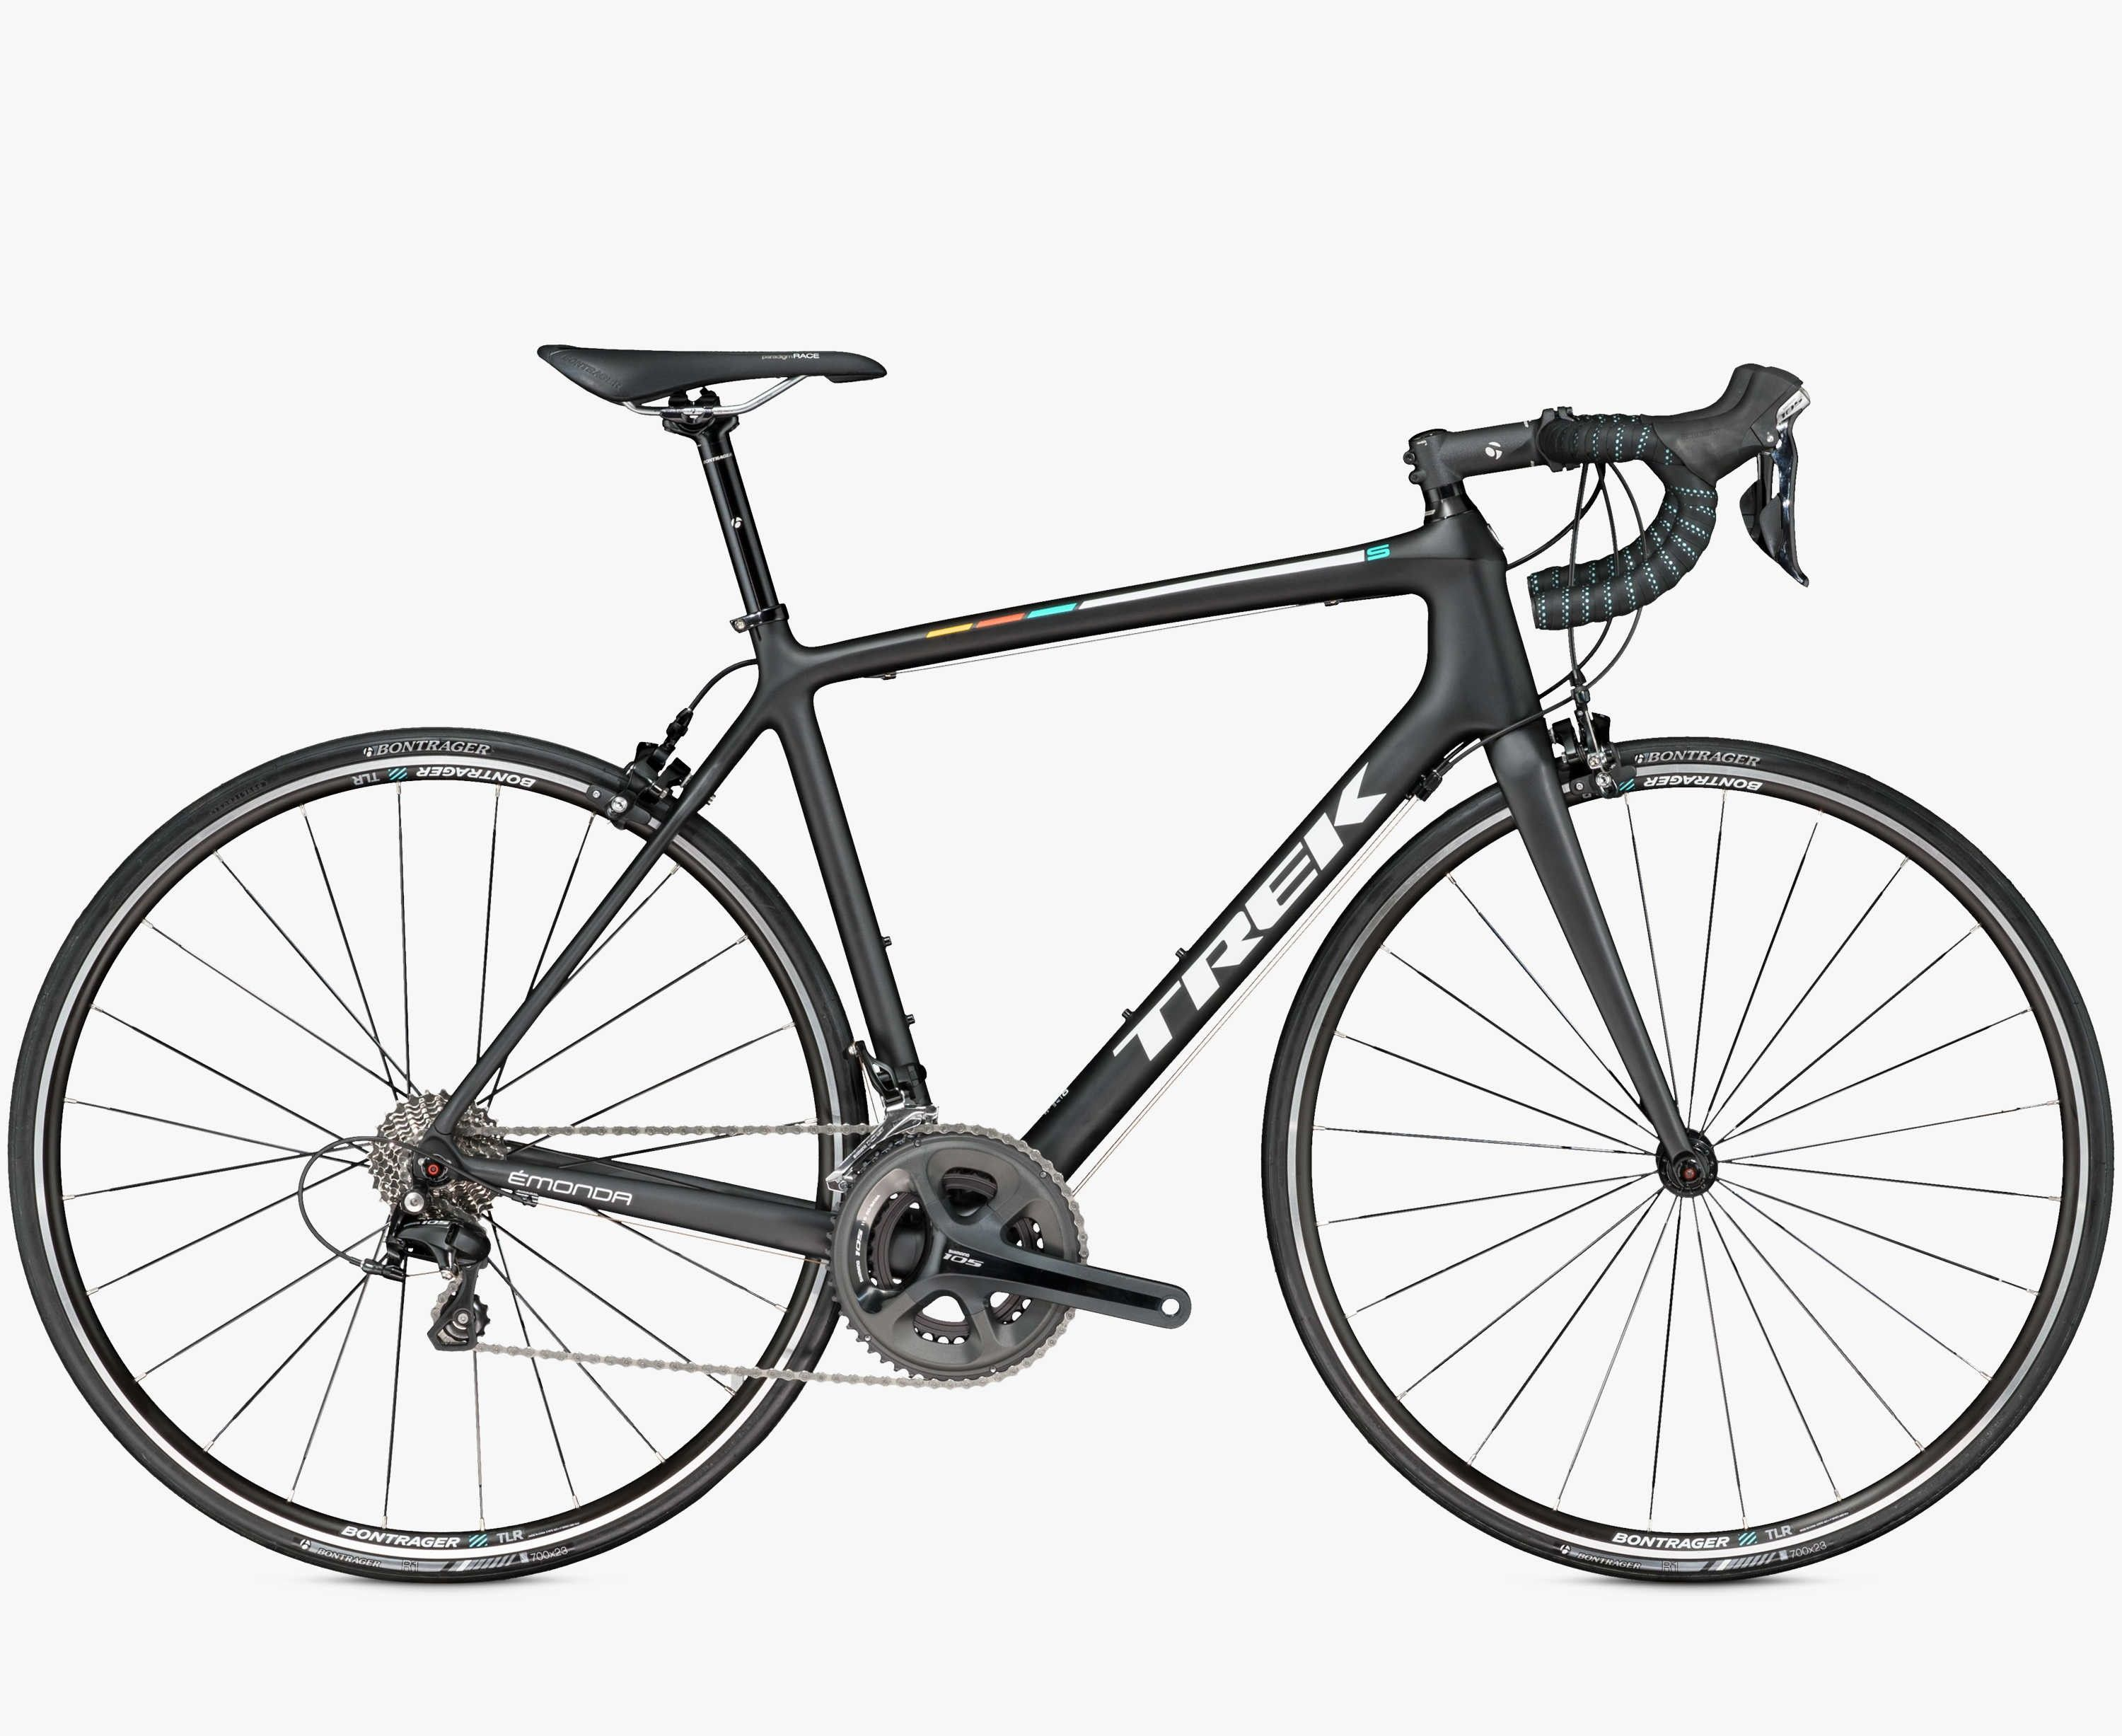 Trek Emonda S 5 Bike 2016 Road Bike Bike Bike Rental